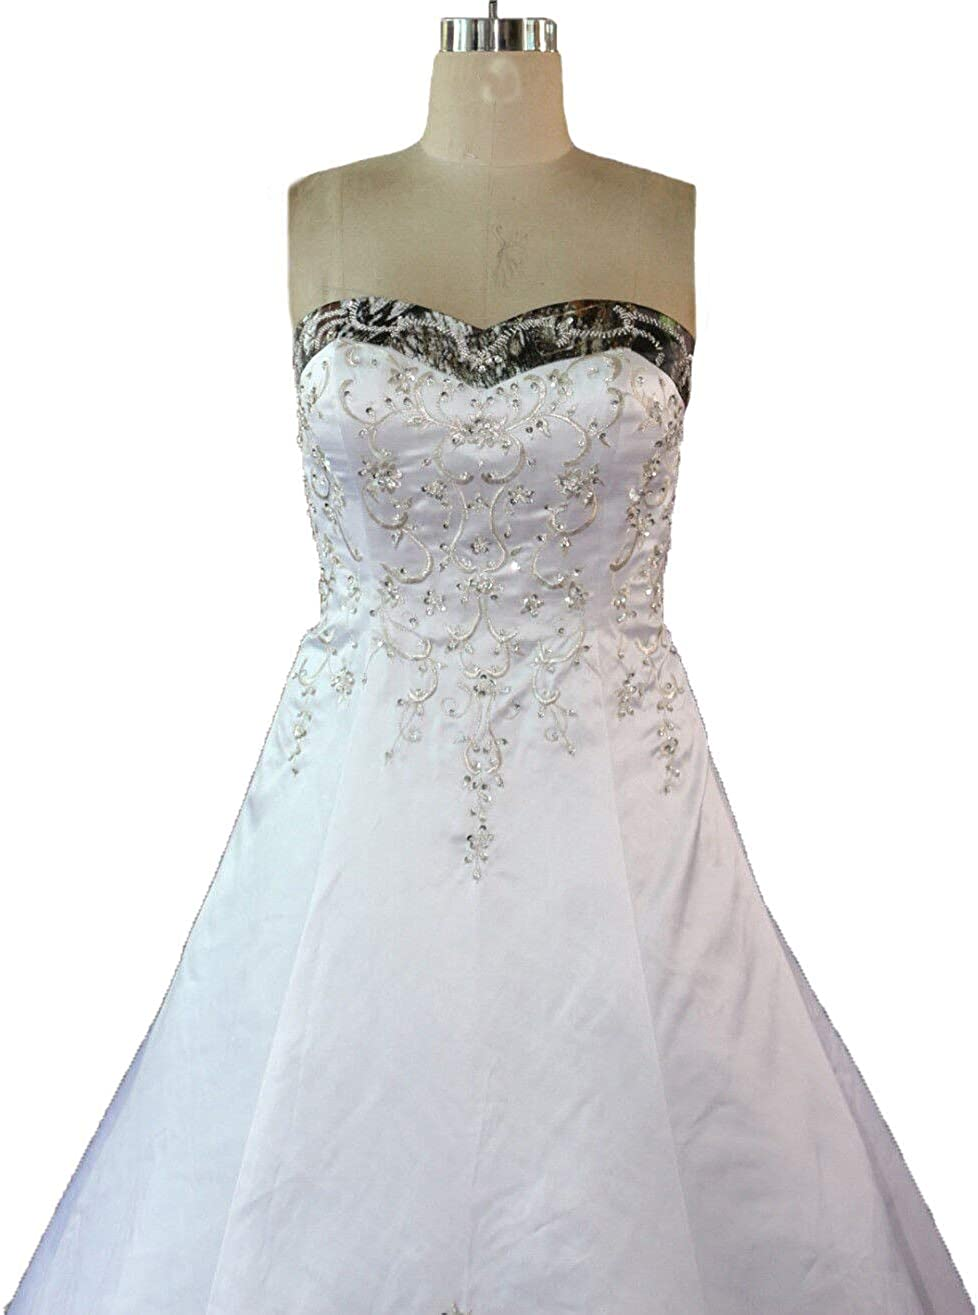 Zvocy White Satin Camo Wedding Dresses A Line Camouflage Embroidery Bridal Gown At Amazon Women S Clothing Store